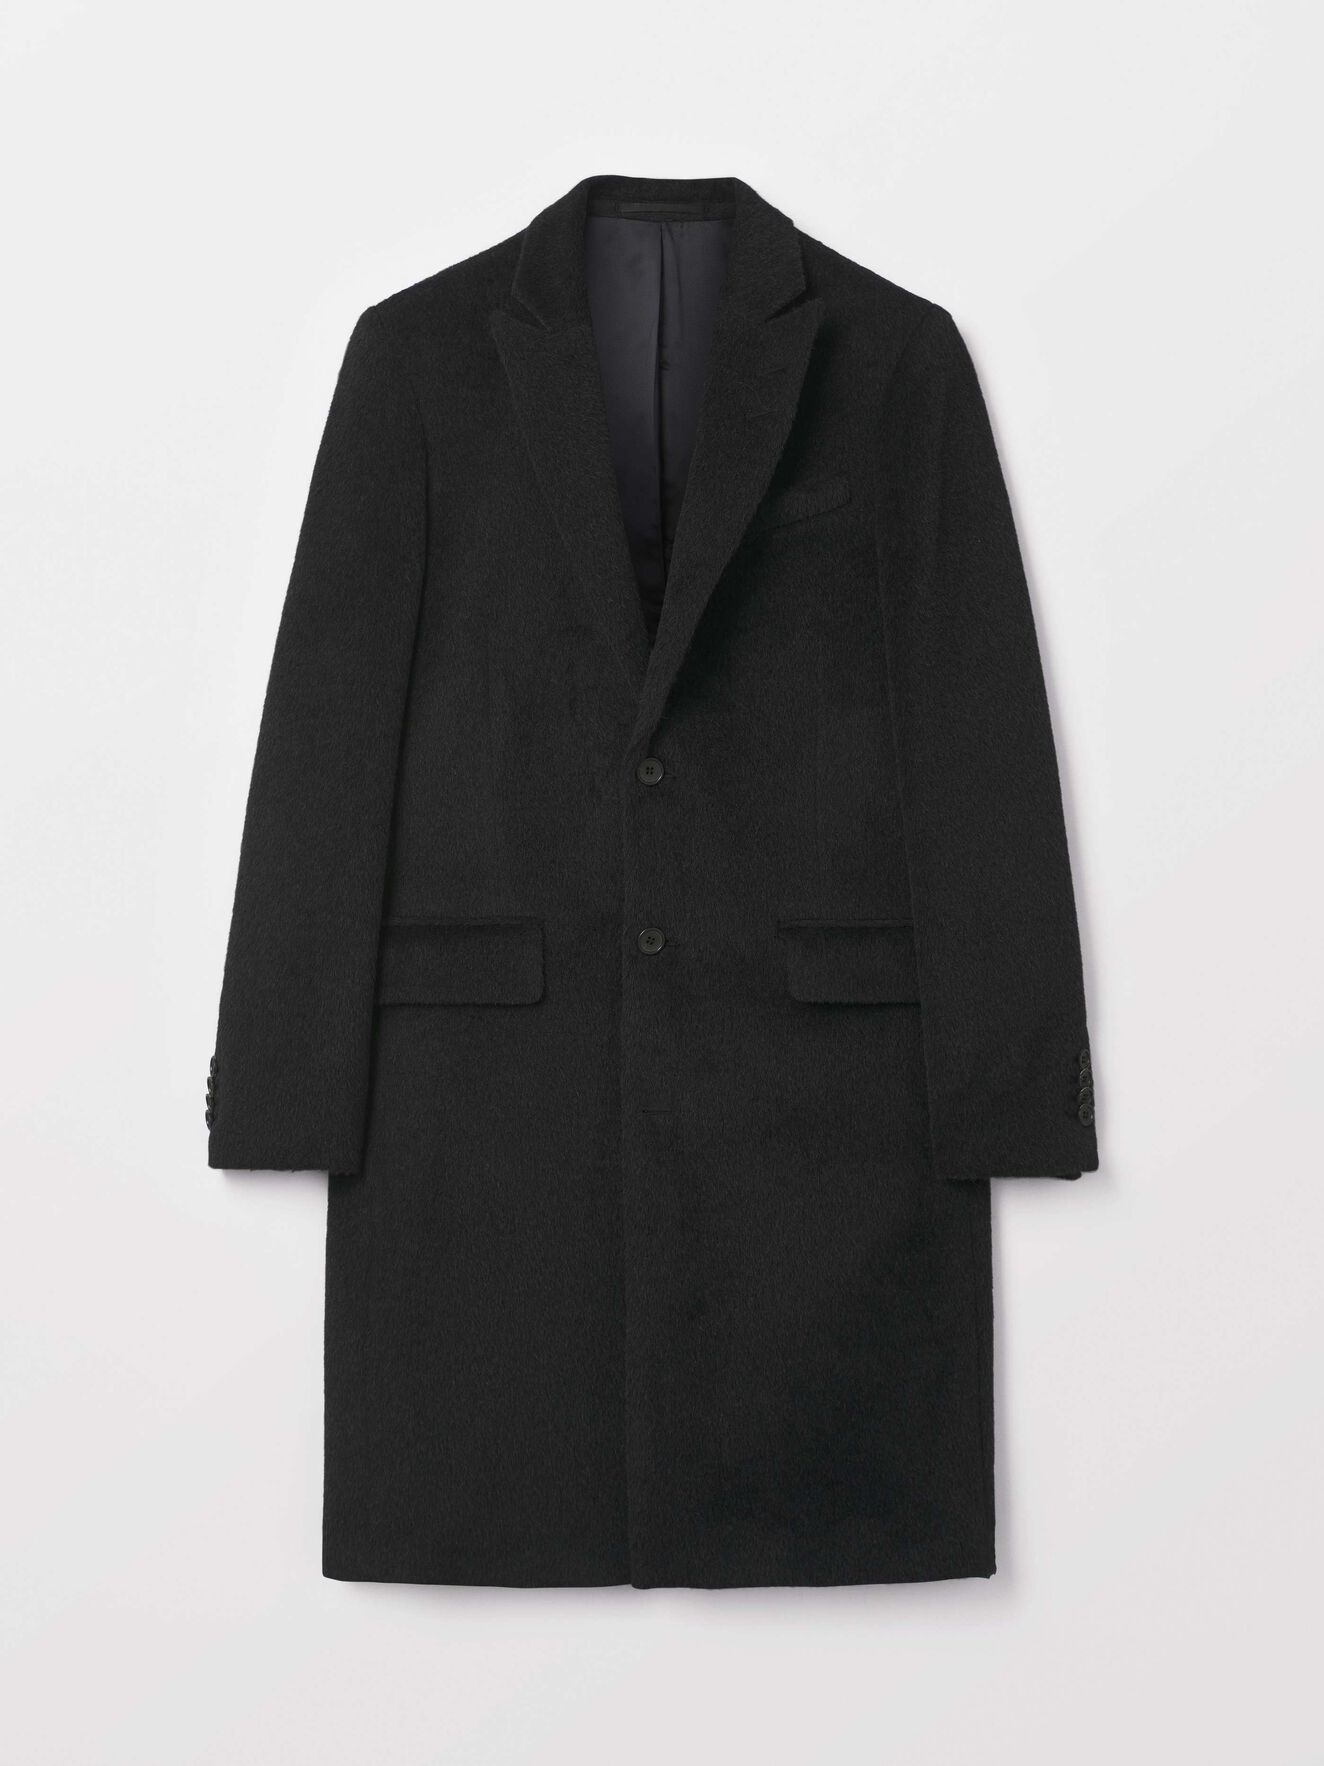 Casiliev Coat in Black from Tiger of Sweden